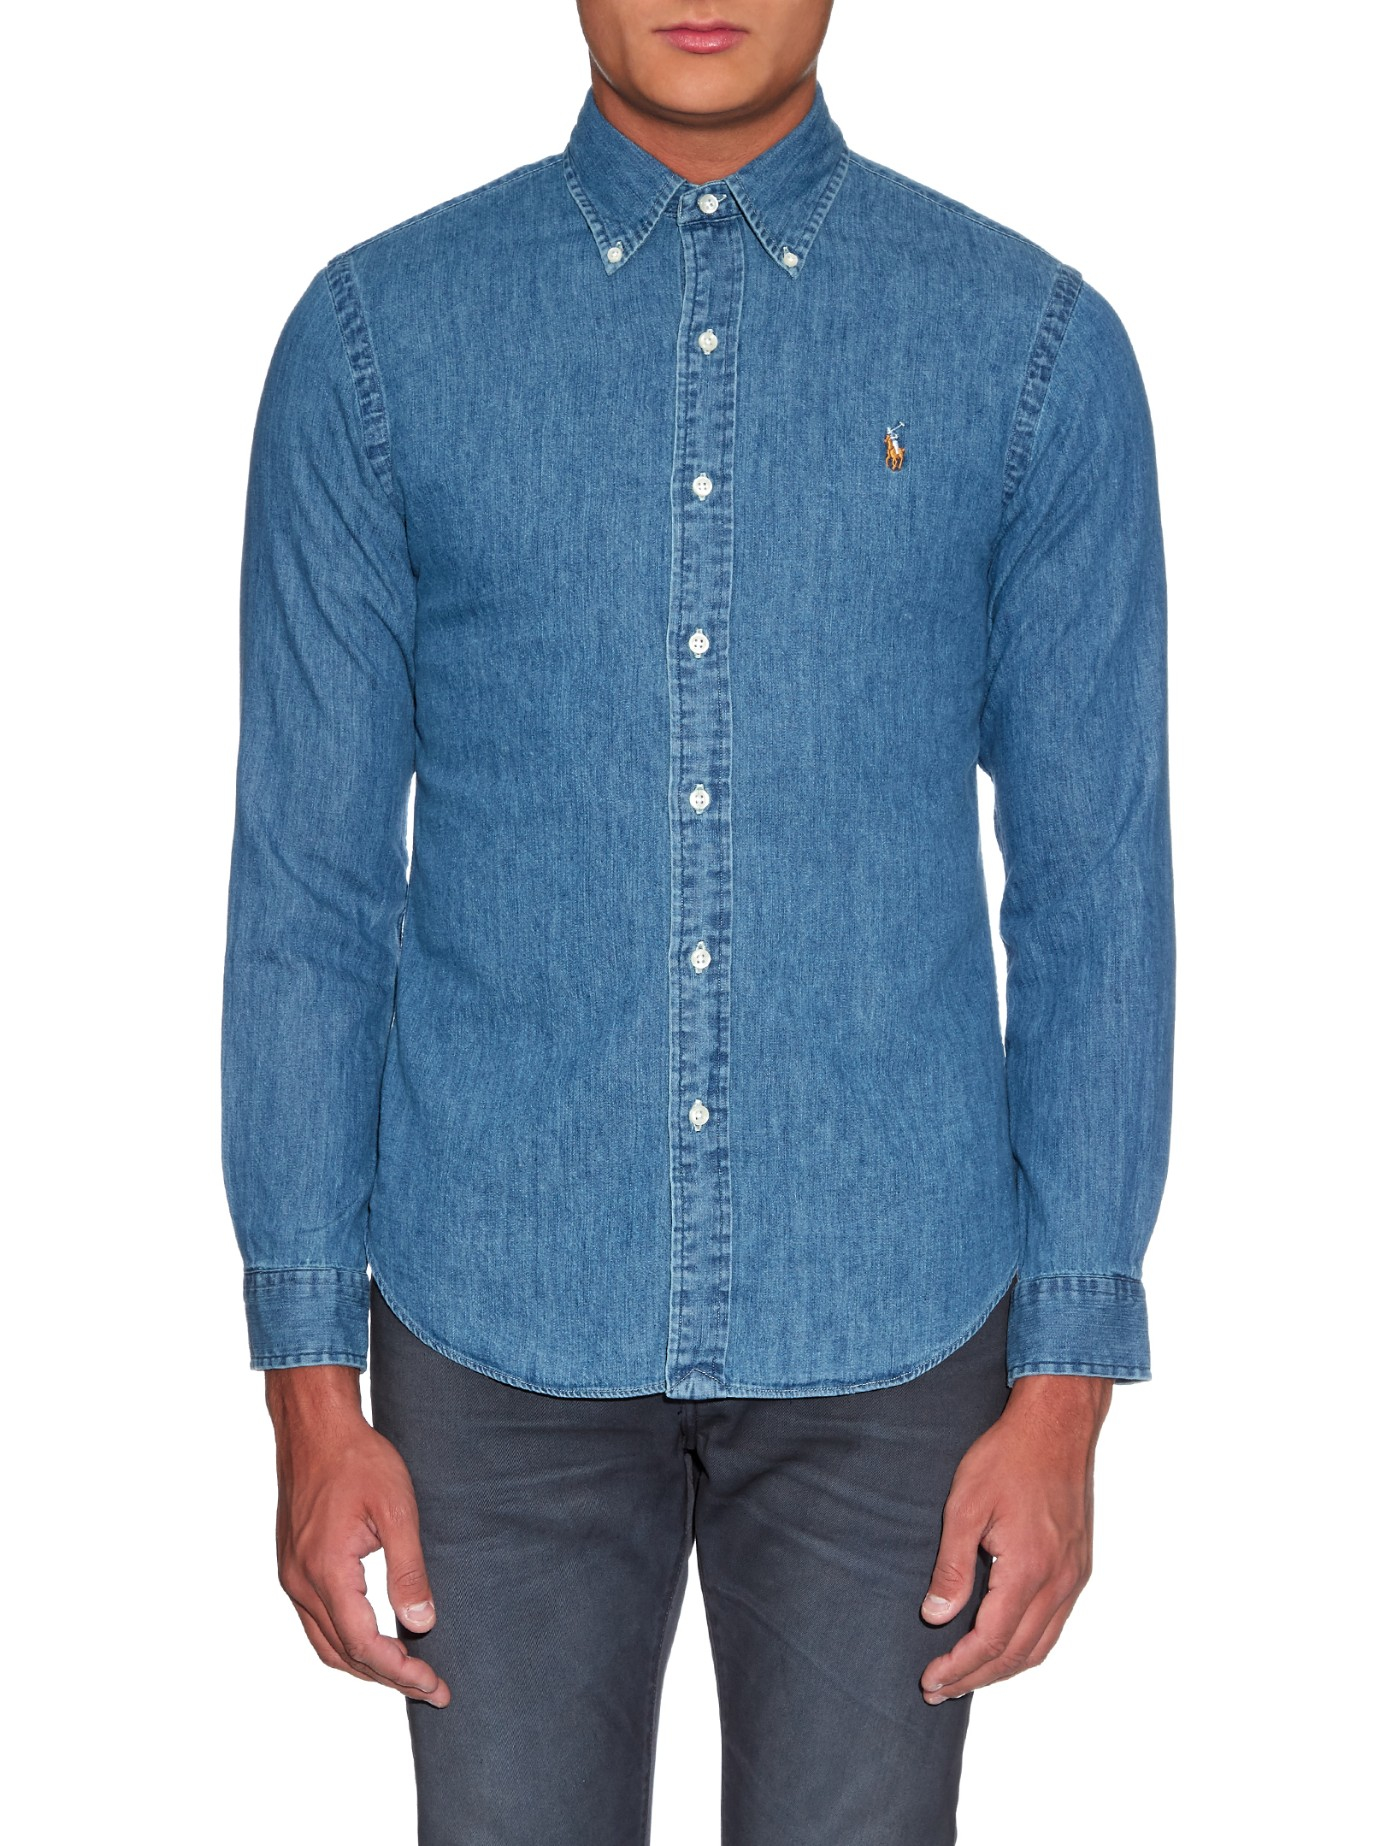 Polo ralph lauren slim fit denim shirt in blue for men lyst for Polo shirt and jeans